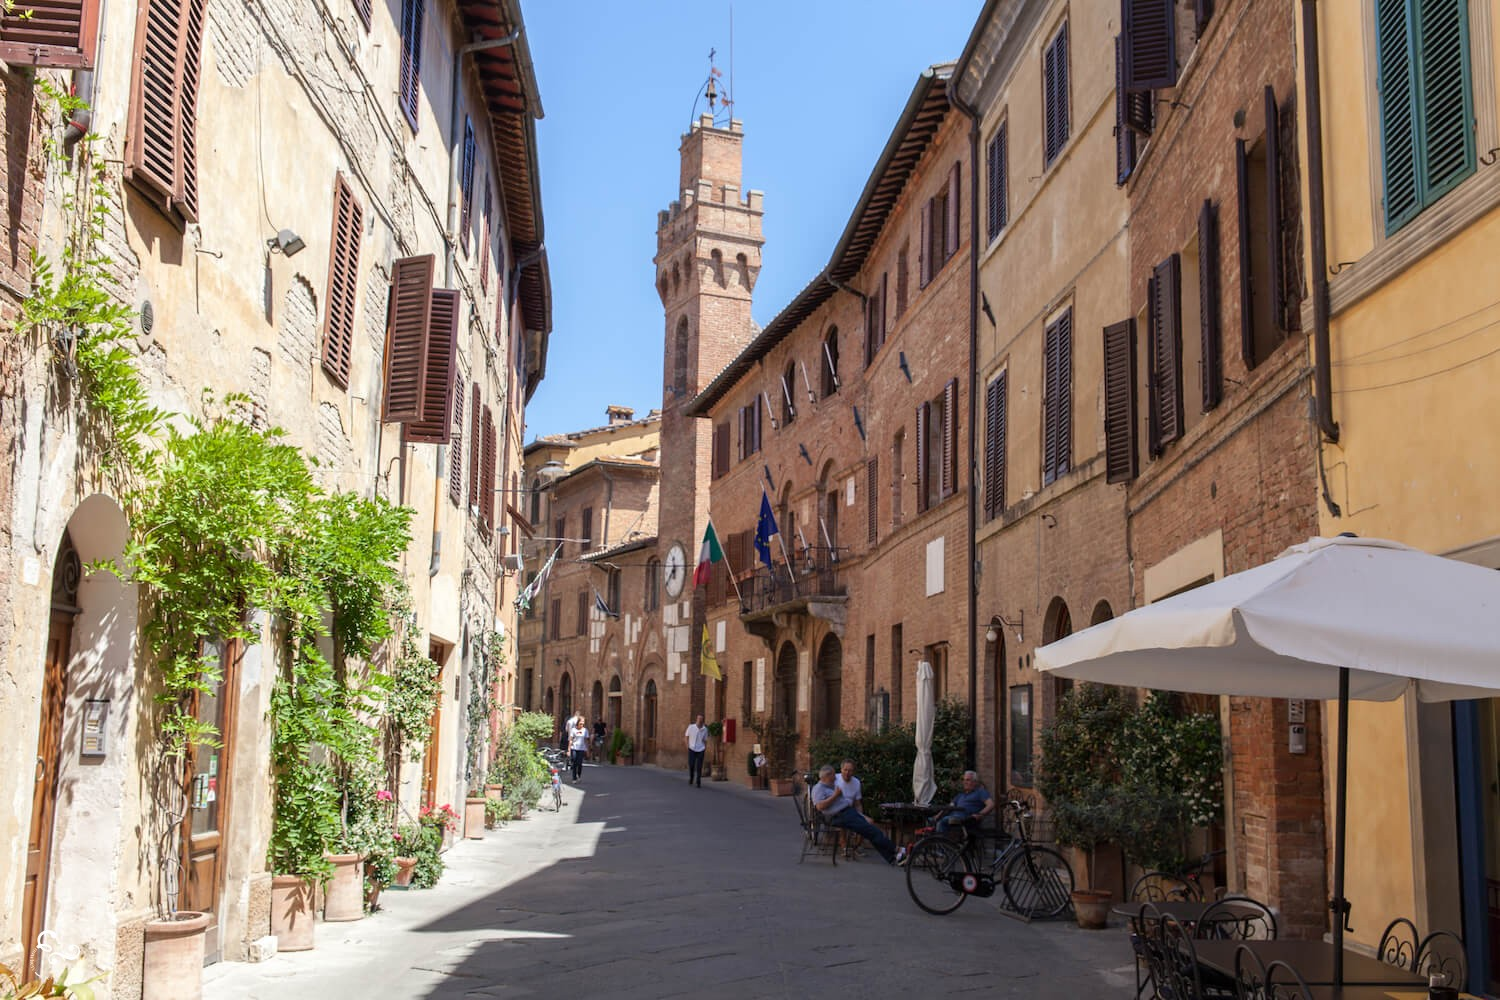 Buonconvento Siena Val d'orcia most beautiful towns in Italy - Eco Travel Nowhere & Everywhere Lis Lisande Dingjan Nederland UK Australia Travel Photographer